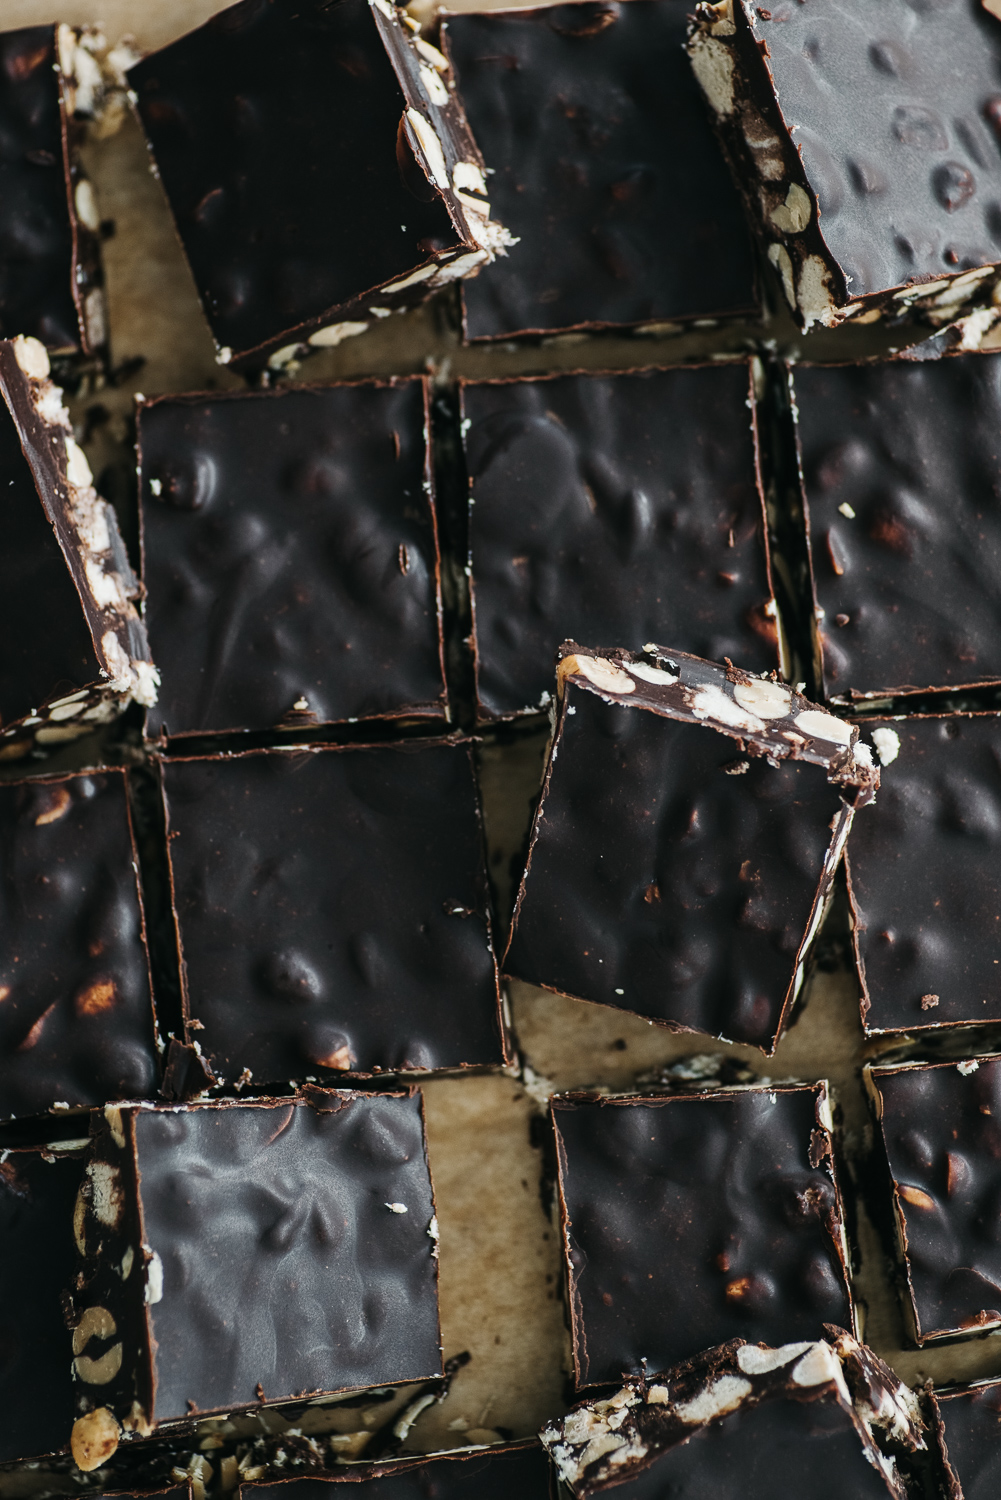 No Bake Sweet and Salty Crunchy Chocolate Bars